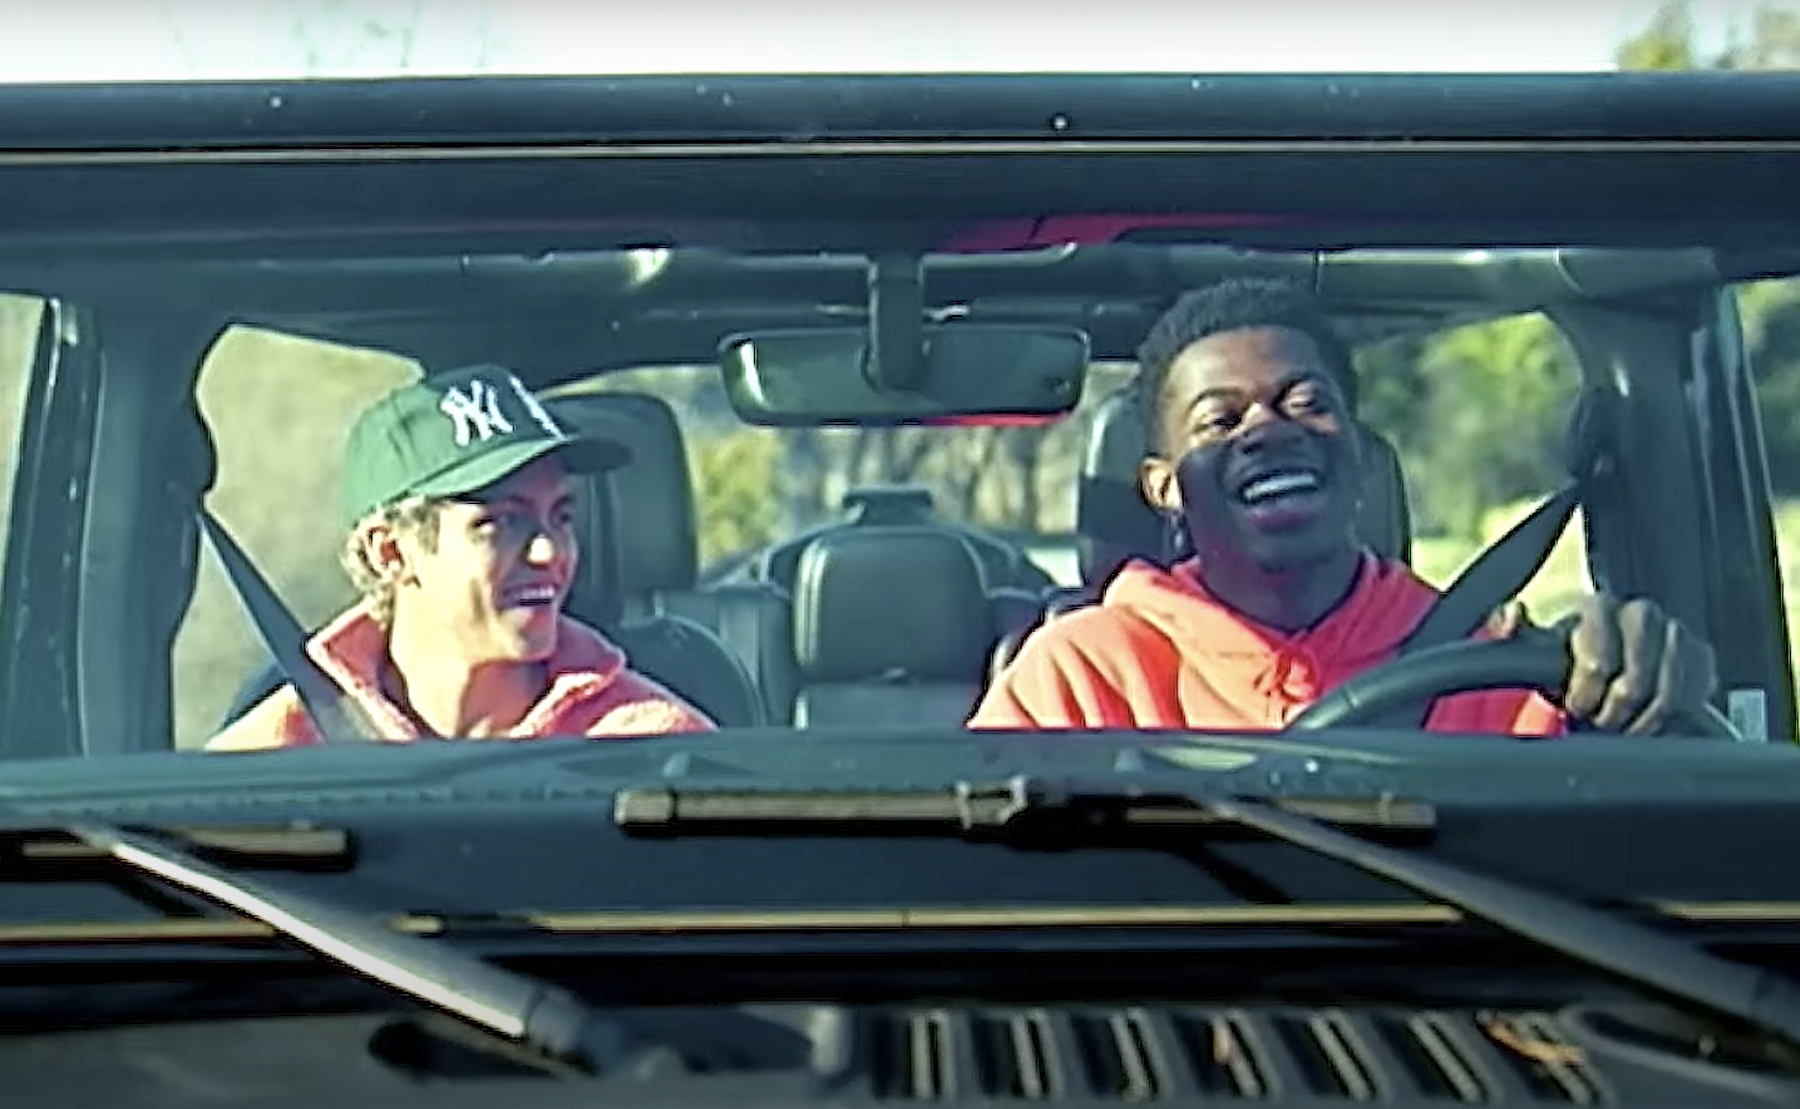 """Watch Brockhampton's video """"Count on Me"""" with Lil Nas X, Dominic Fike"""